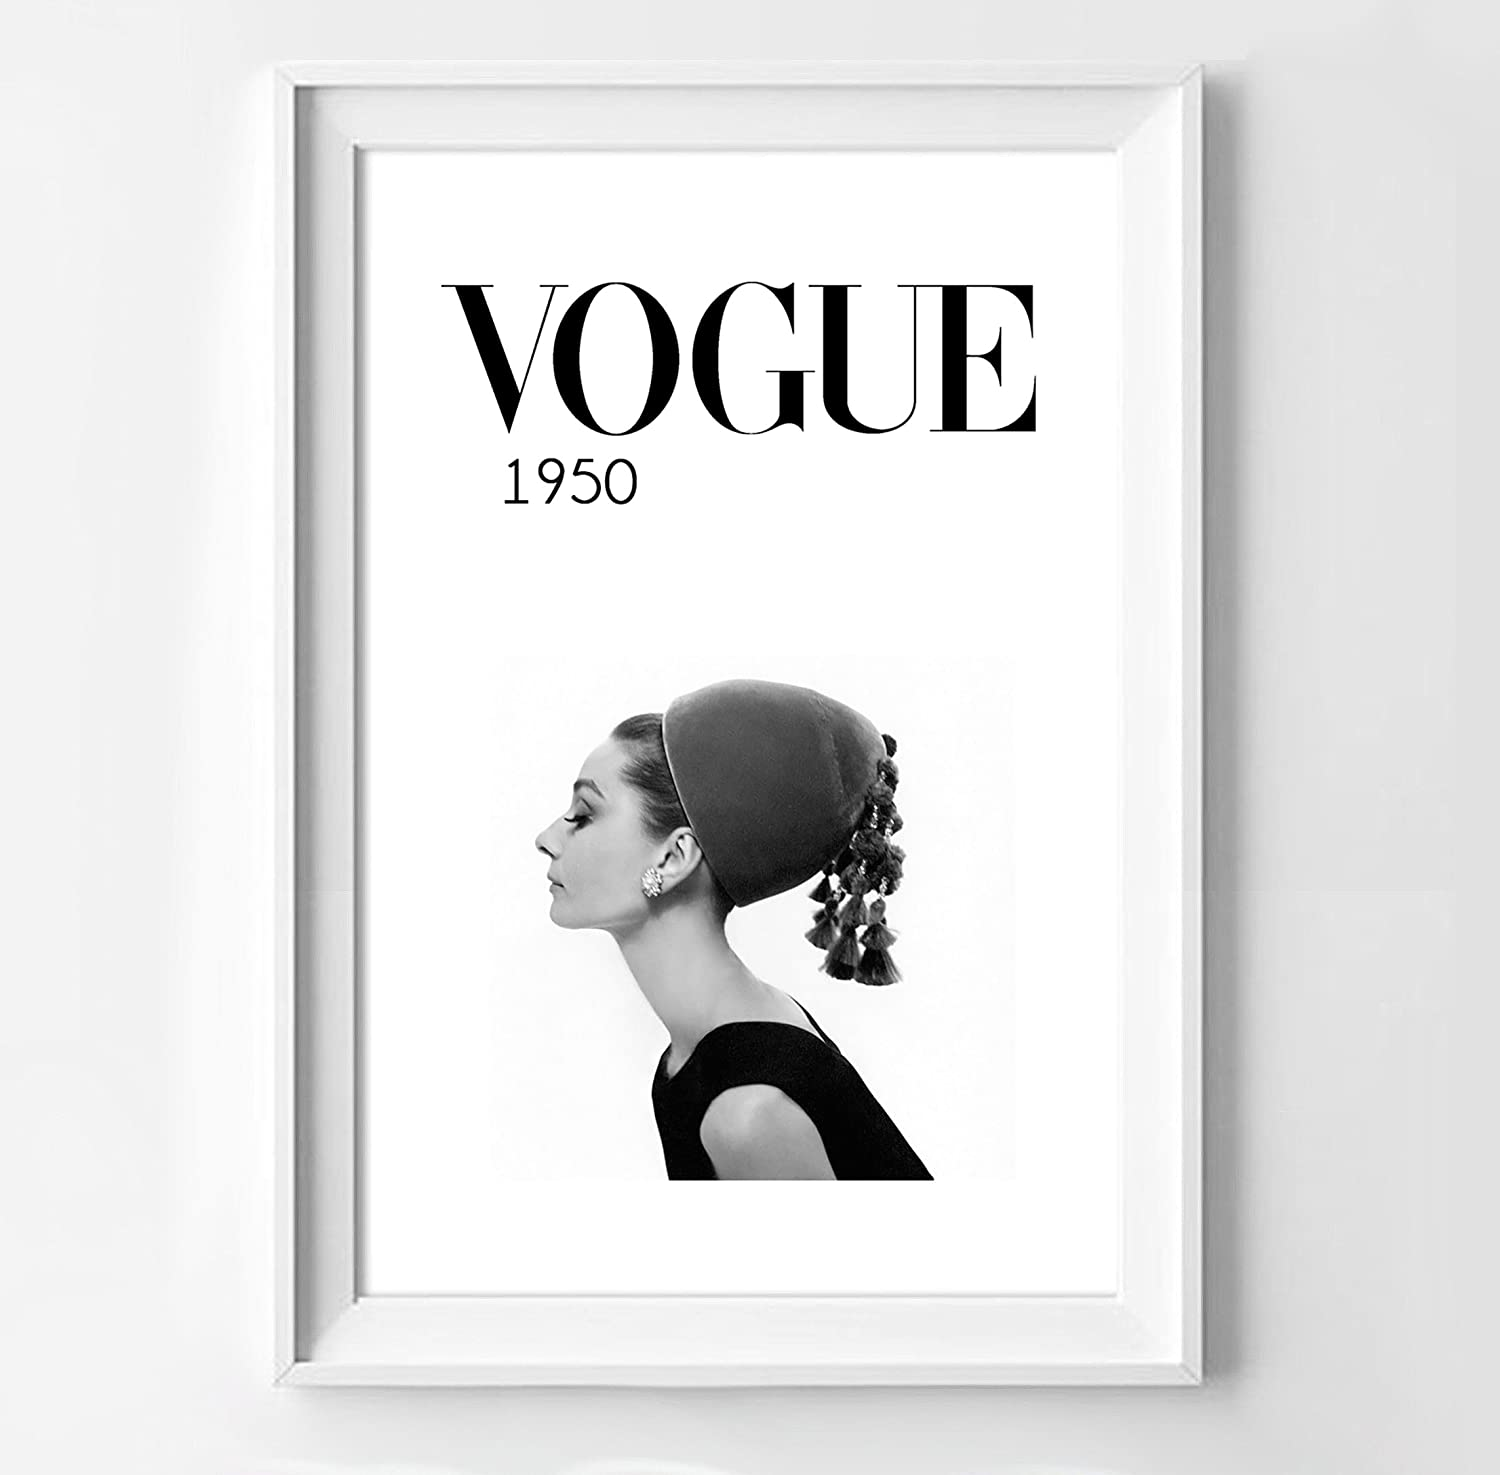 Amazon.com: Poster audrey hepburn for vogue in black and white ...